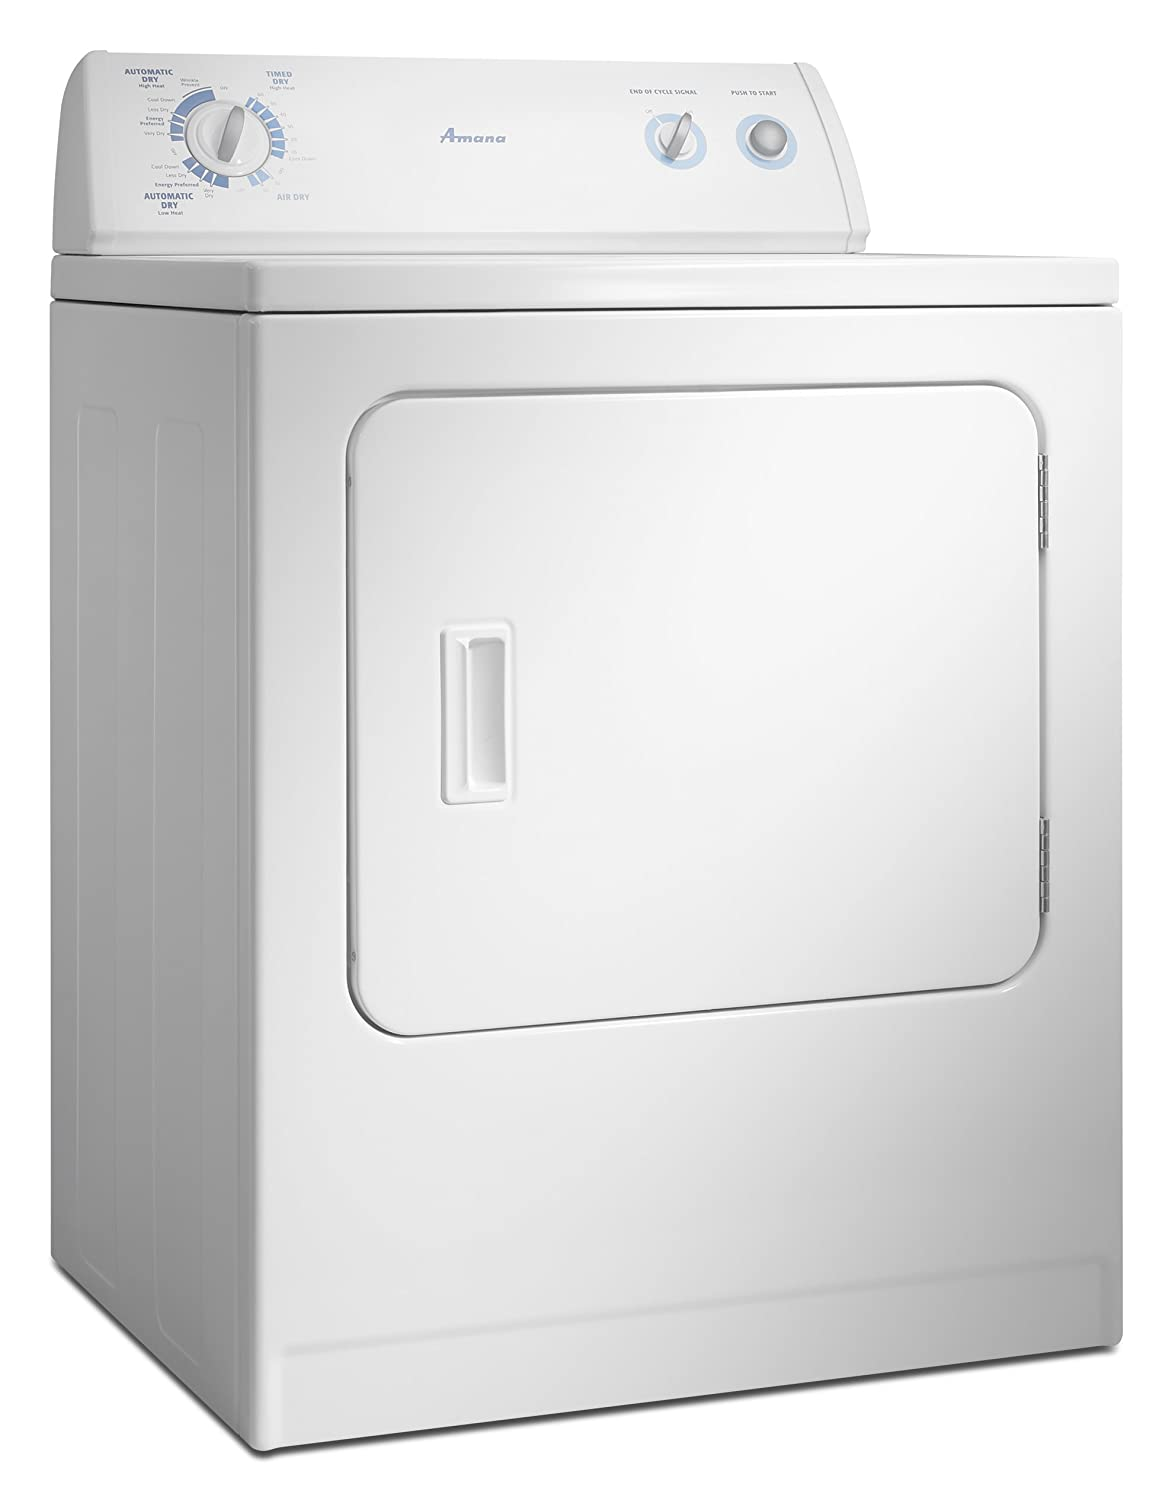 Amana 65 Cubic Foot Traditional Electric Dryer Diagram Color Also Electrical Wire Connections Besides Ned4500vq White Appliances